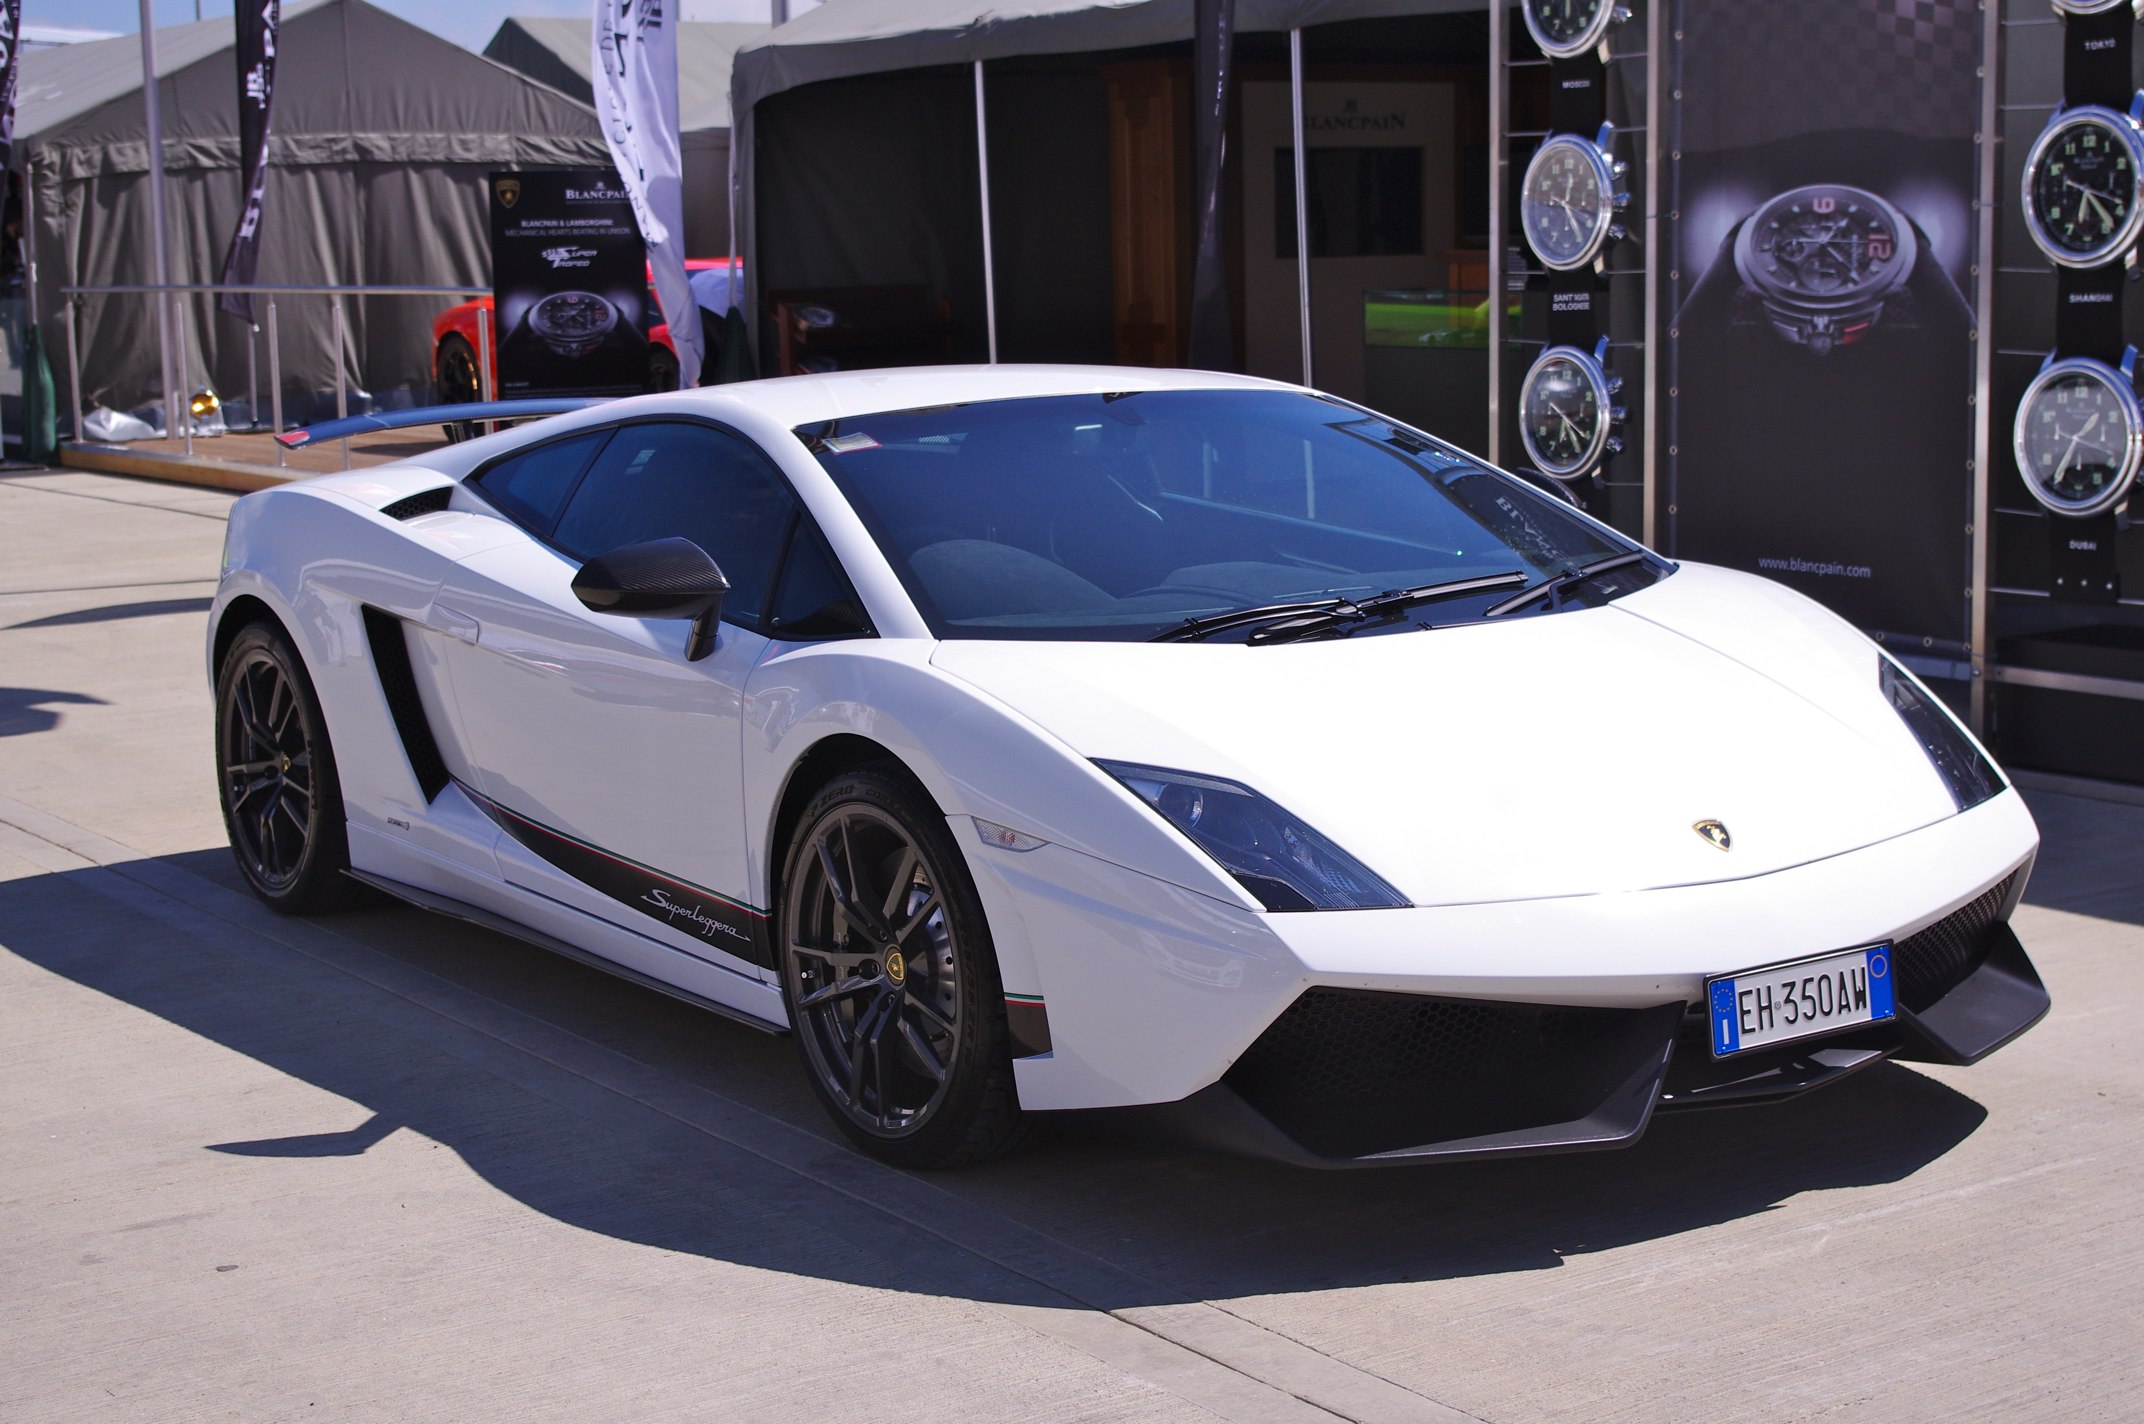 File:Lamborghini Gallardo LP 570 4 Superleggera   David Merrett